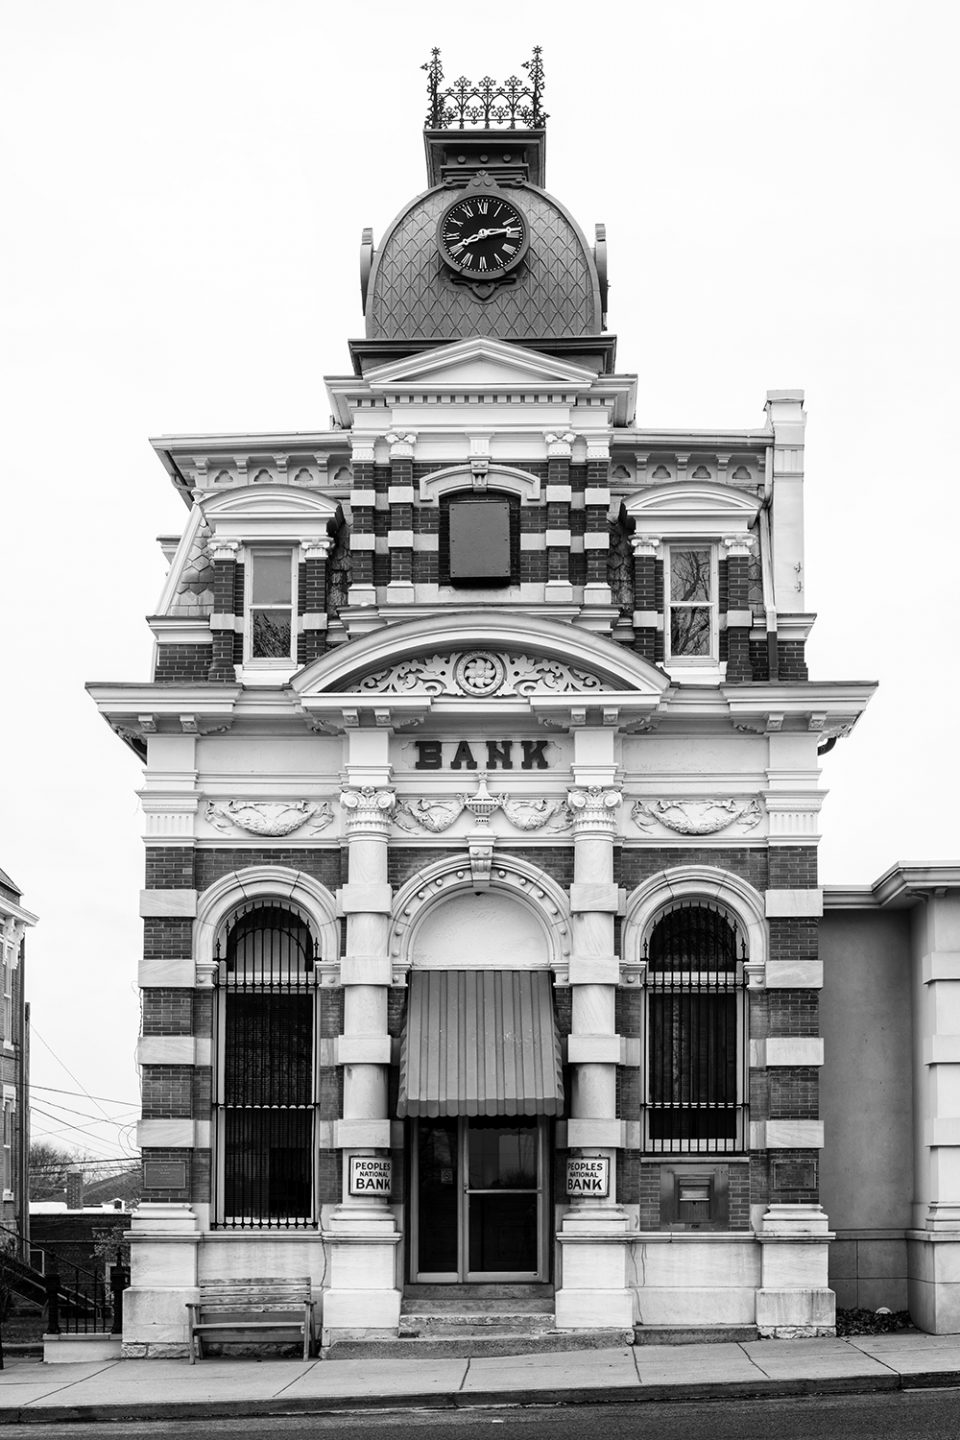 Historic Cloud State Bank Building in McLeansboro, Illinois - Black and White Photograph by Keith Dotson. Click to buy a fine art print.